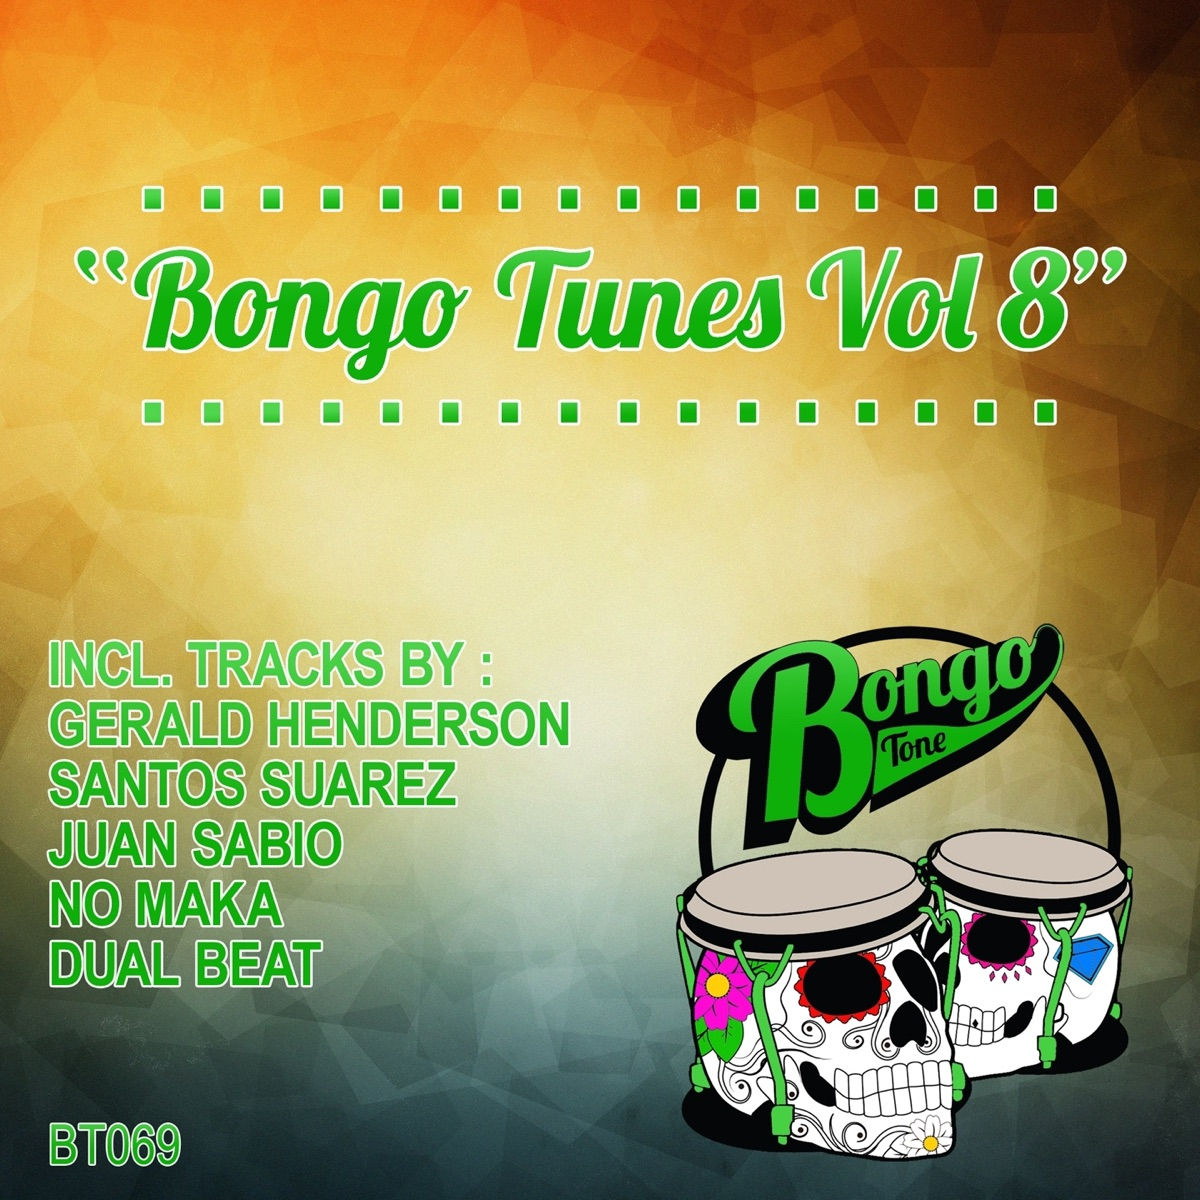 Bongo Tunes Vol 8 - EP Various Artists CD cover